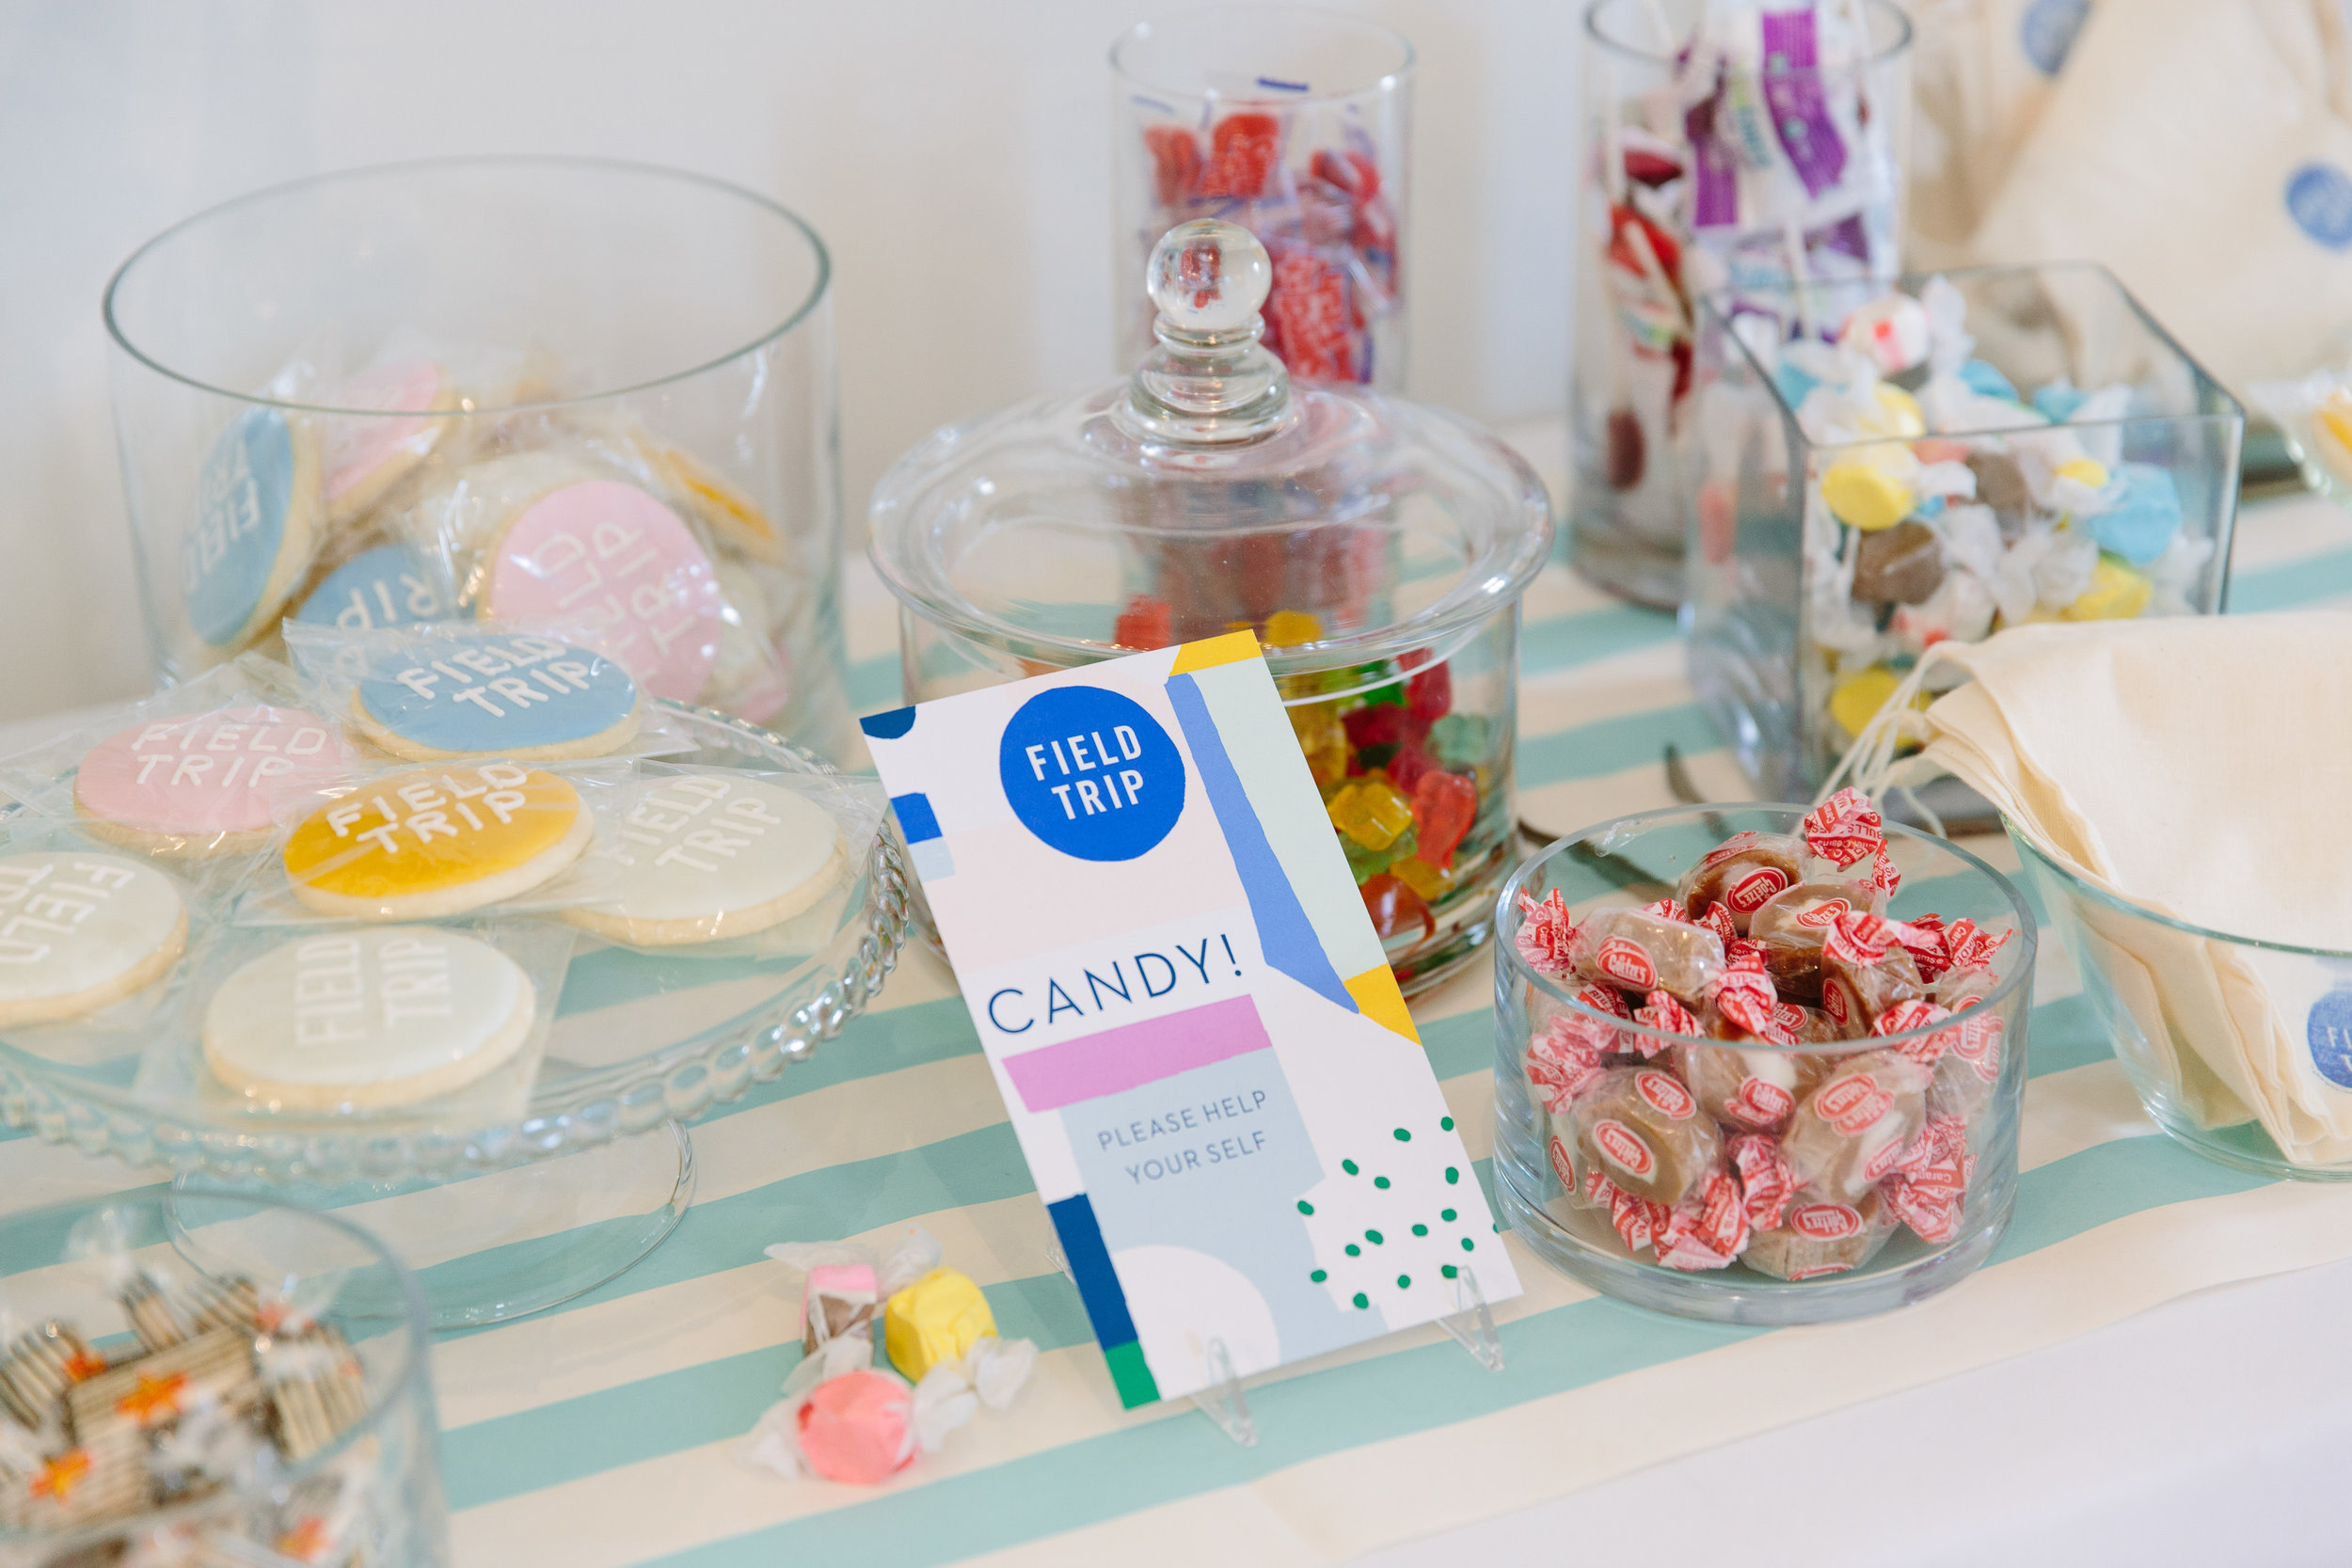 Our lovely candy table — clients are invited to have a sweet treat!